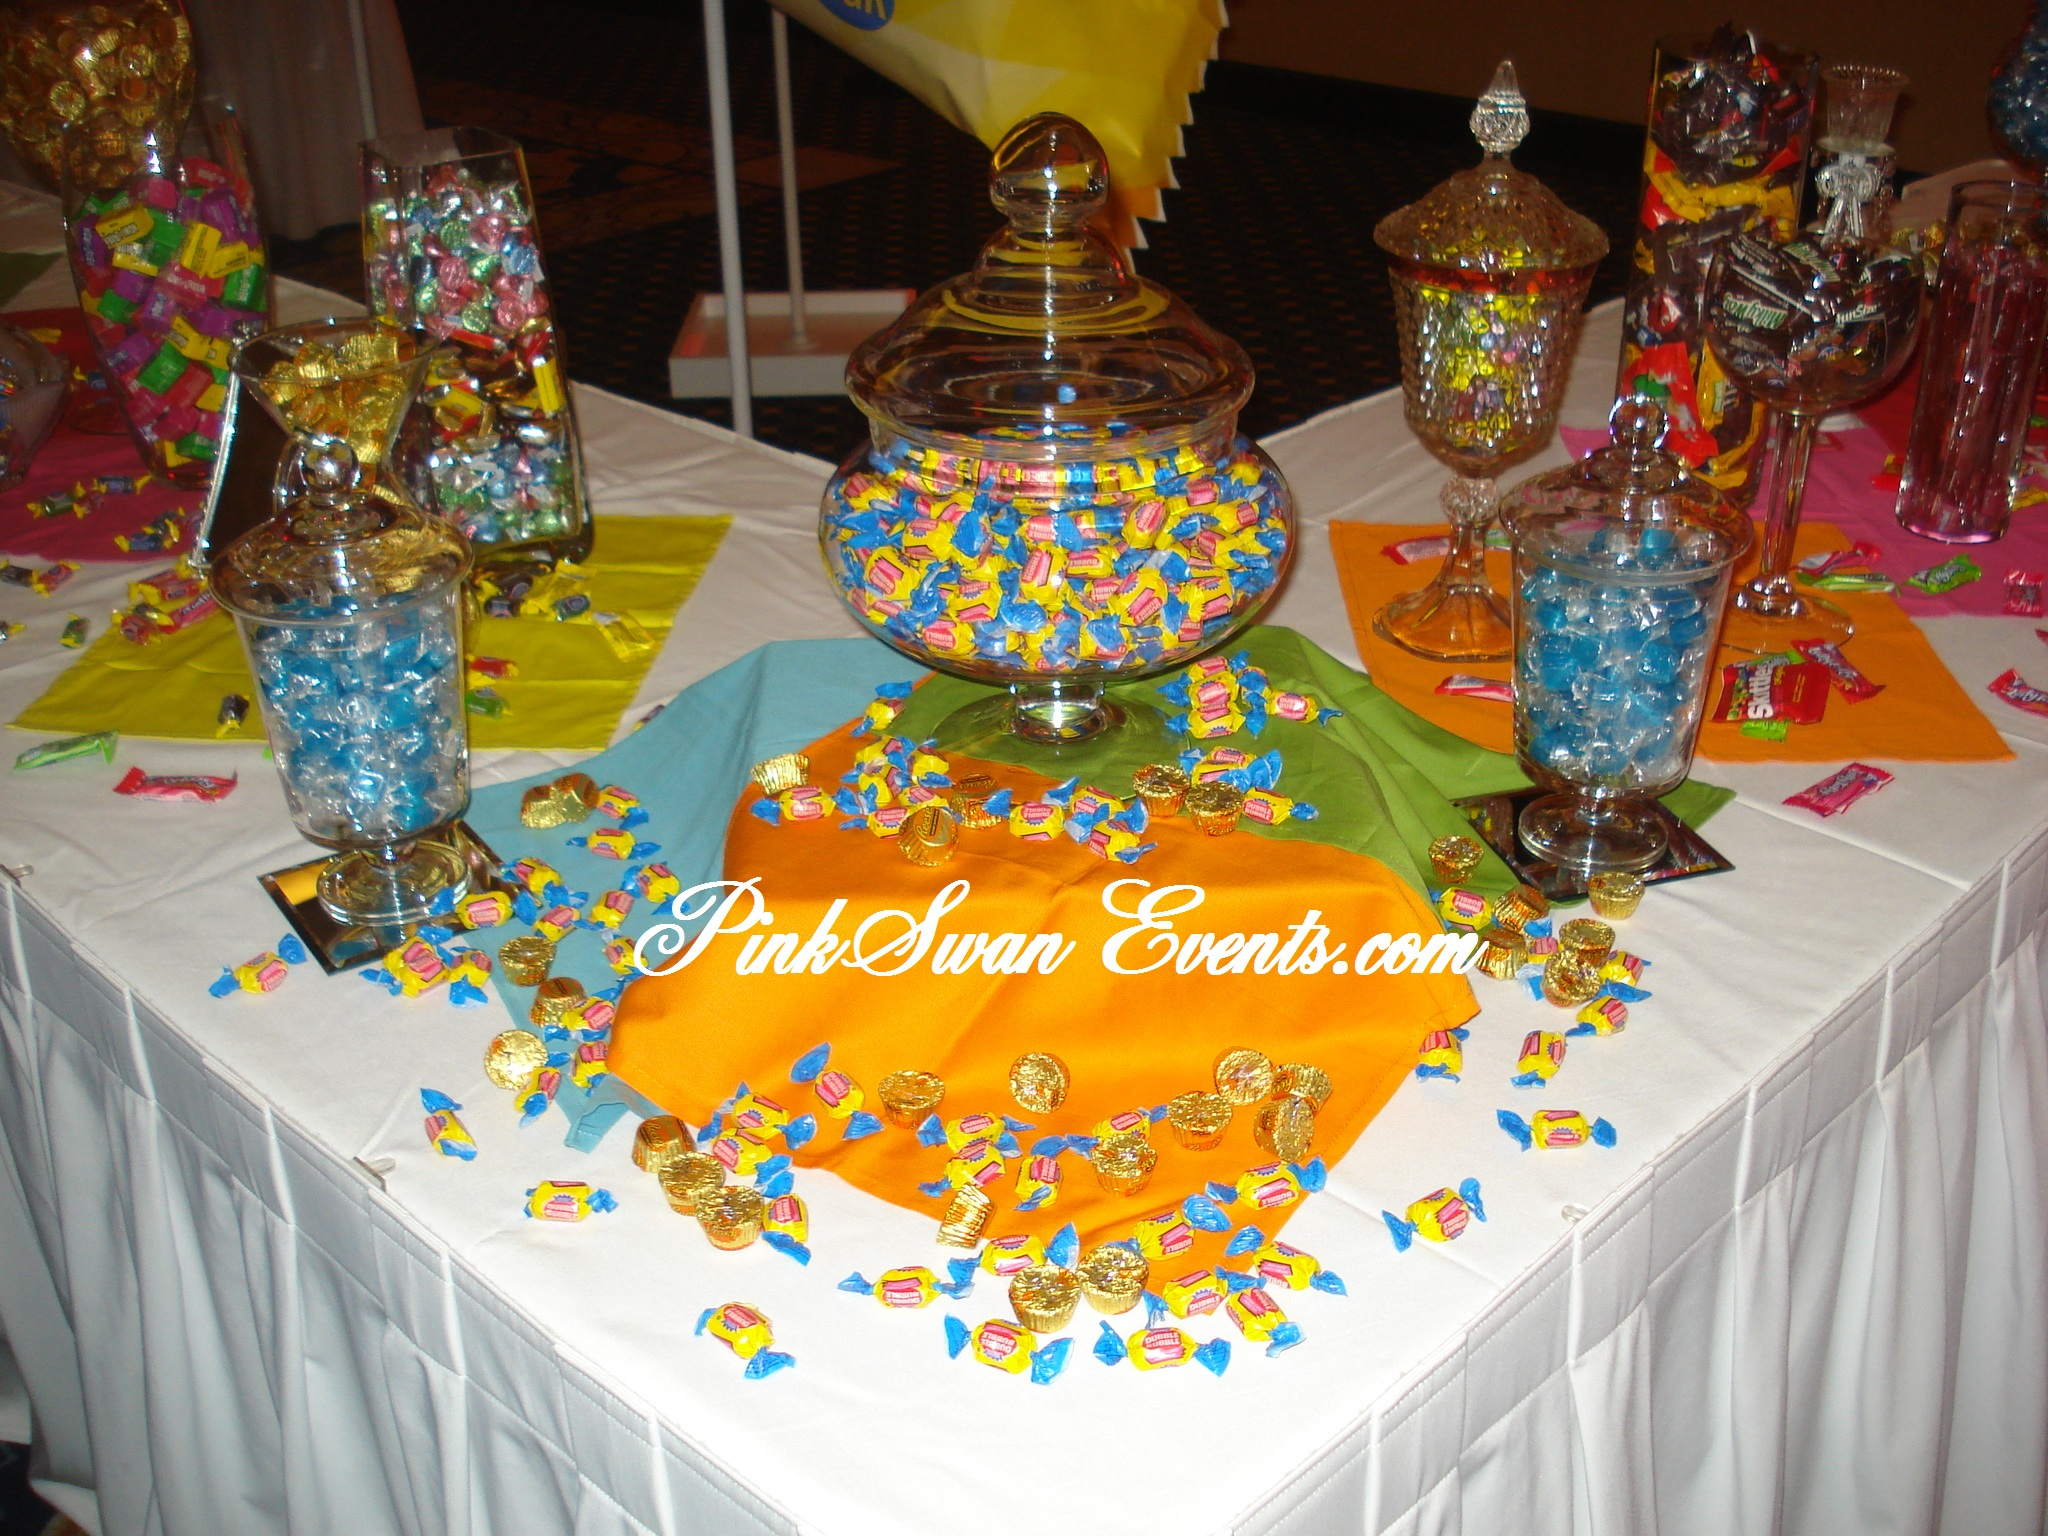 Swell Dessert Tables Dc Pink Swan Events Download Free Architecture Designs Viewormadebymaigaardcom